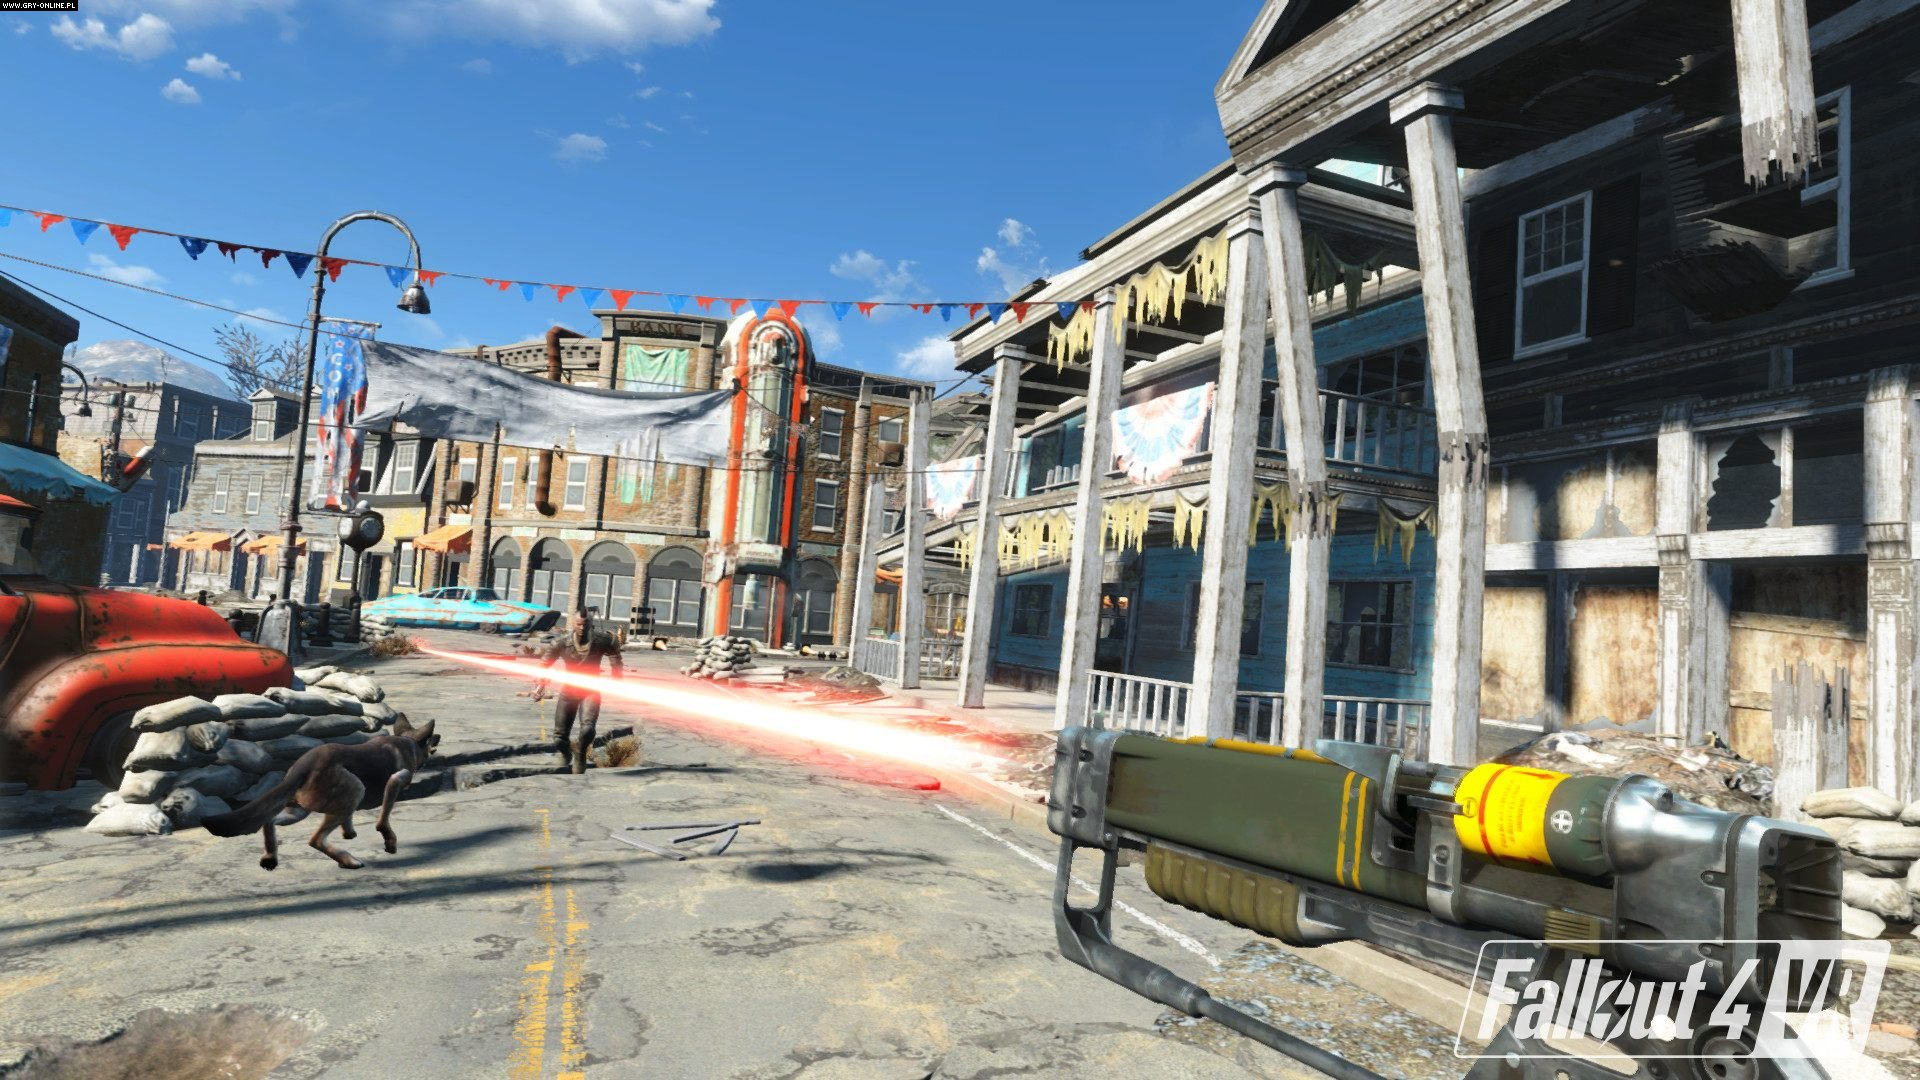 Fallout 4 VR PC Gry Screen 1/5, Bethesda Softworks